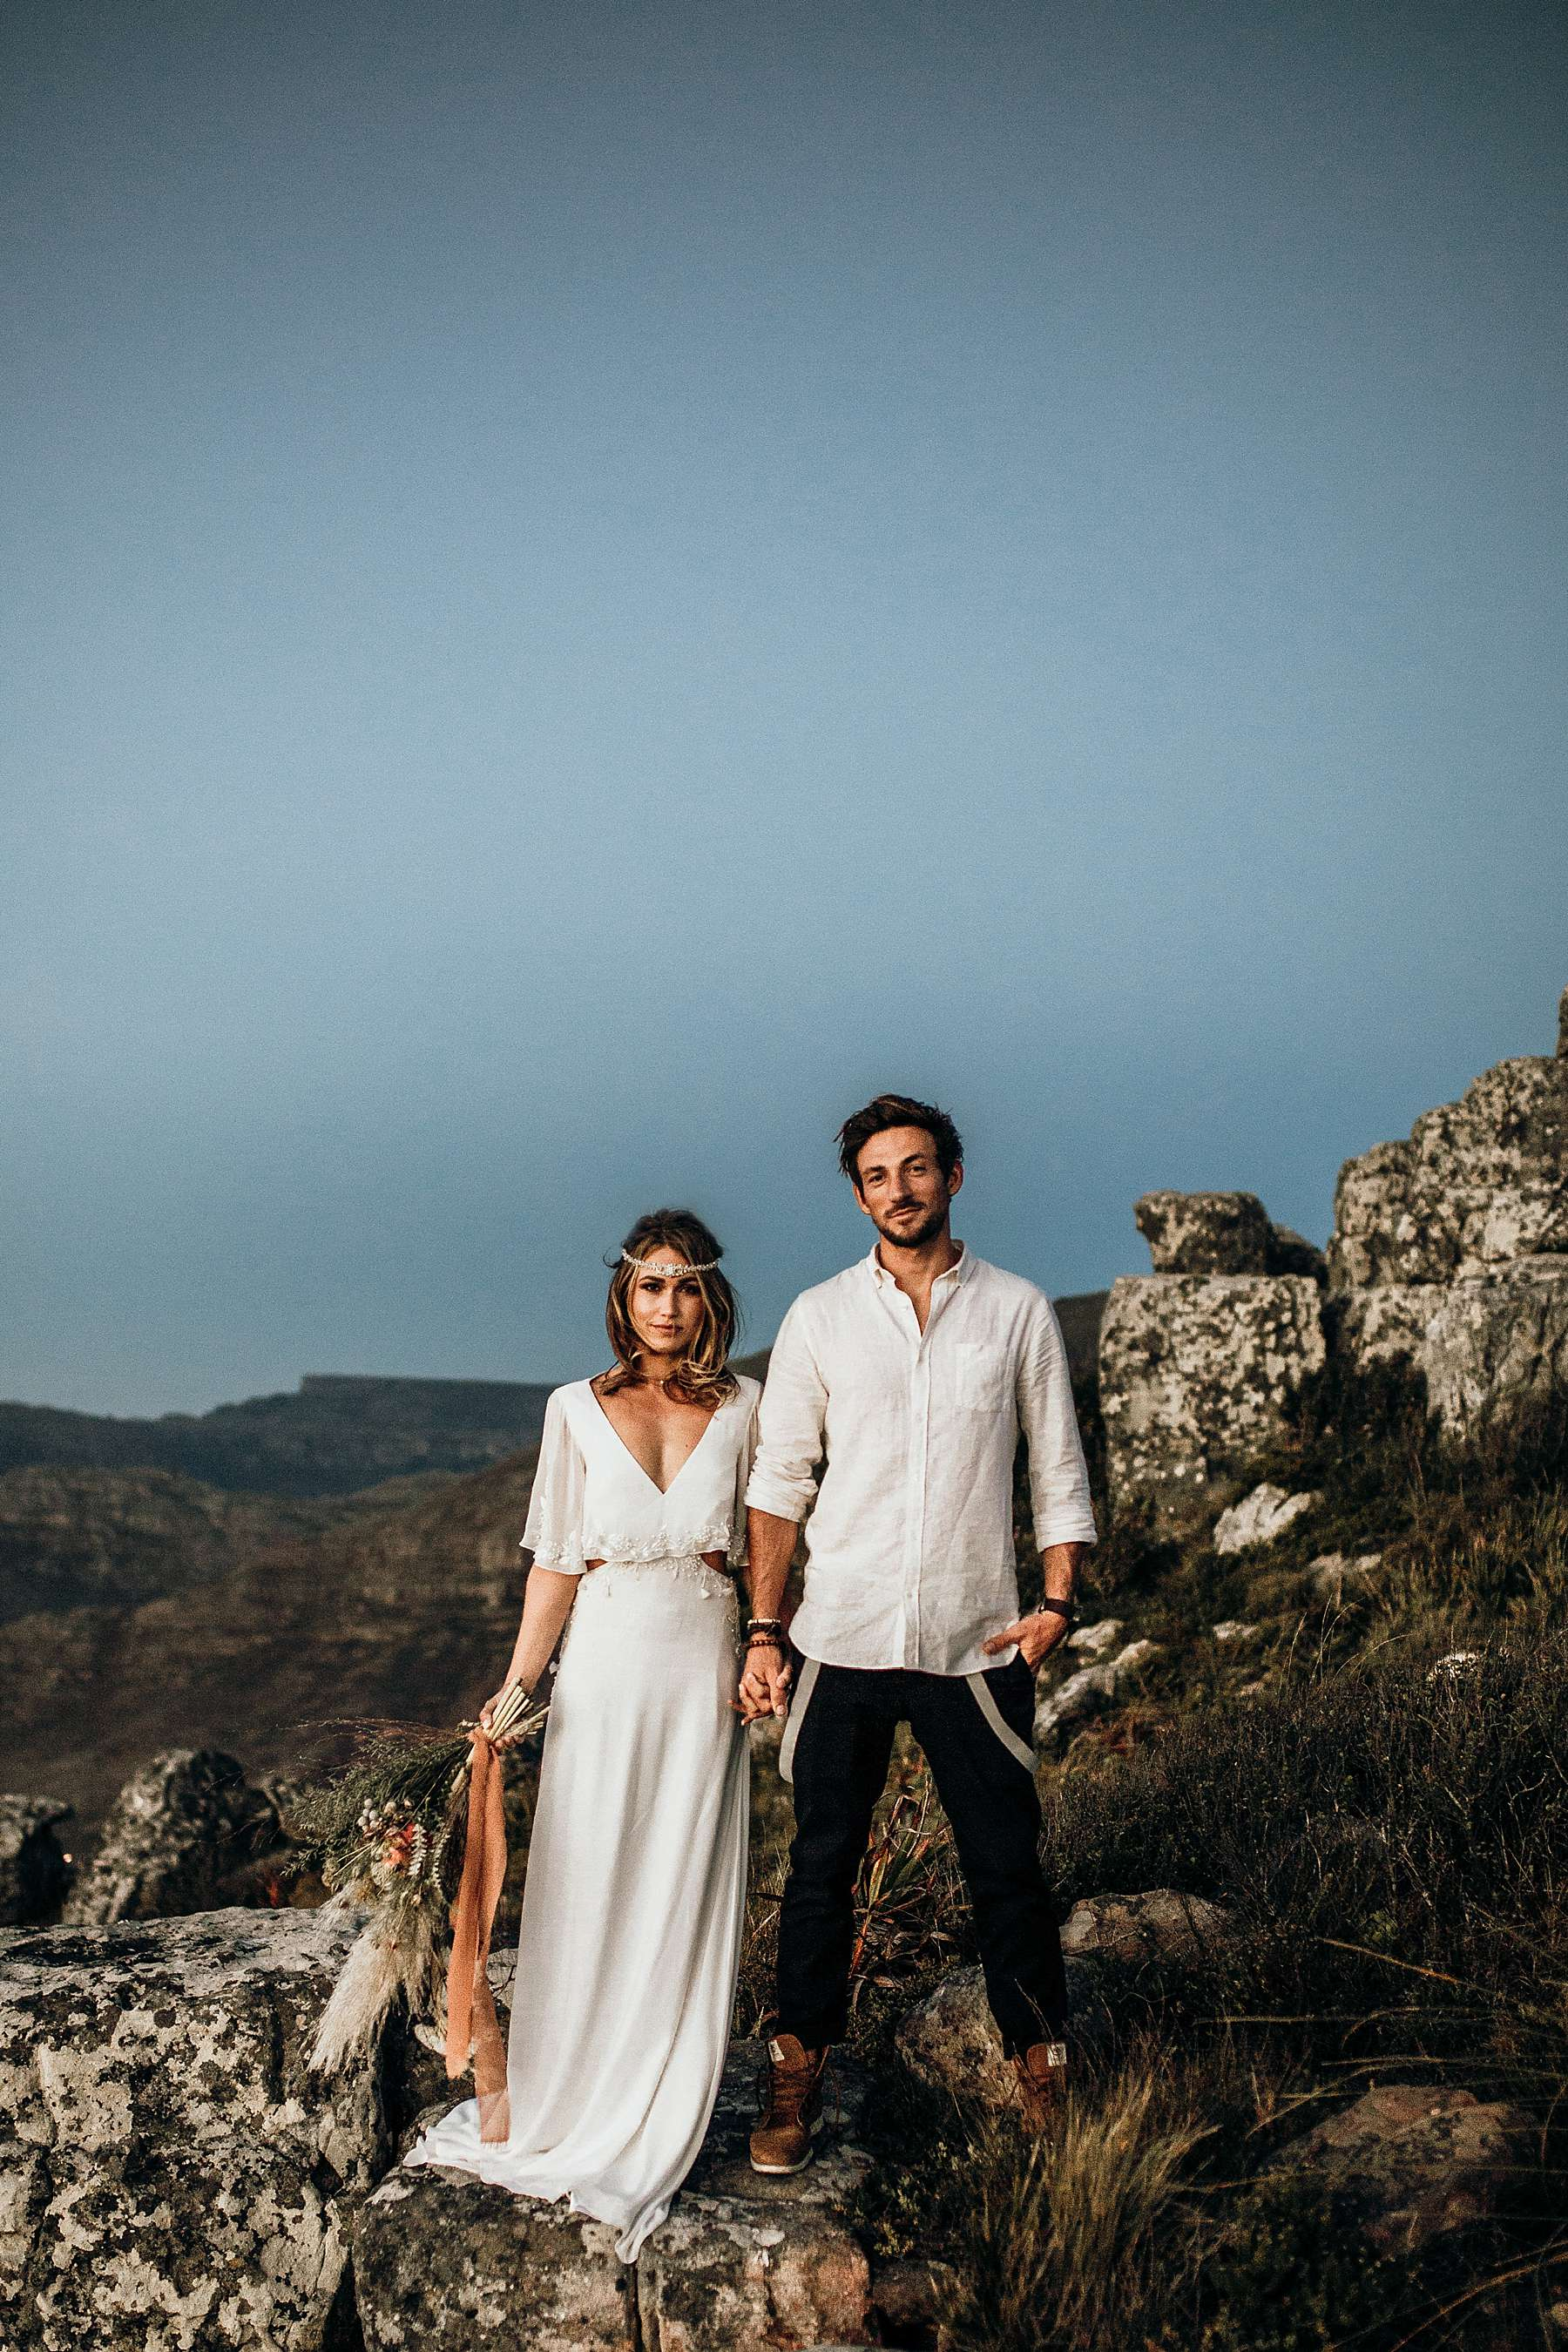 LOTTYH-South-Africa-Cape-Town-Elopement-Photographer_0050.jpg